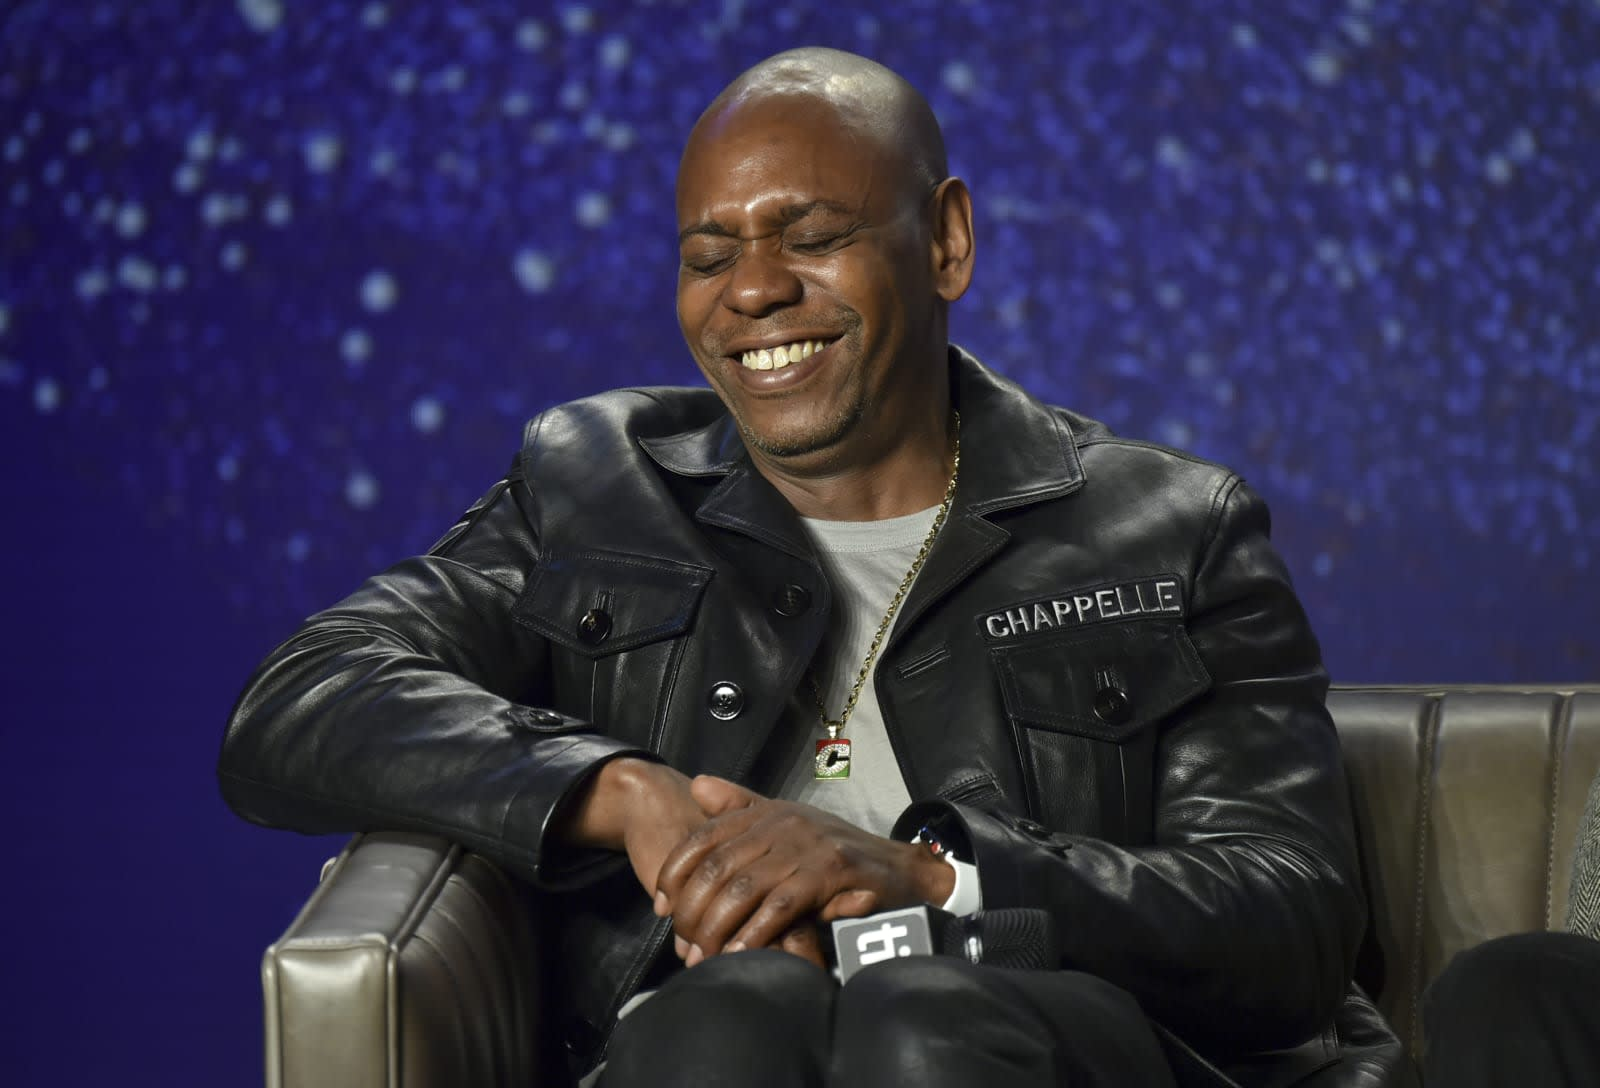 Dave Chappelle Tour 2020.Netflix S Fifth Dave Chappelle Comedy Special Debuts August